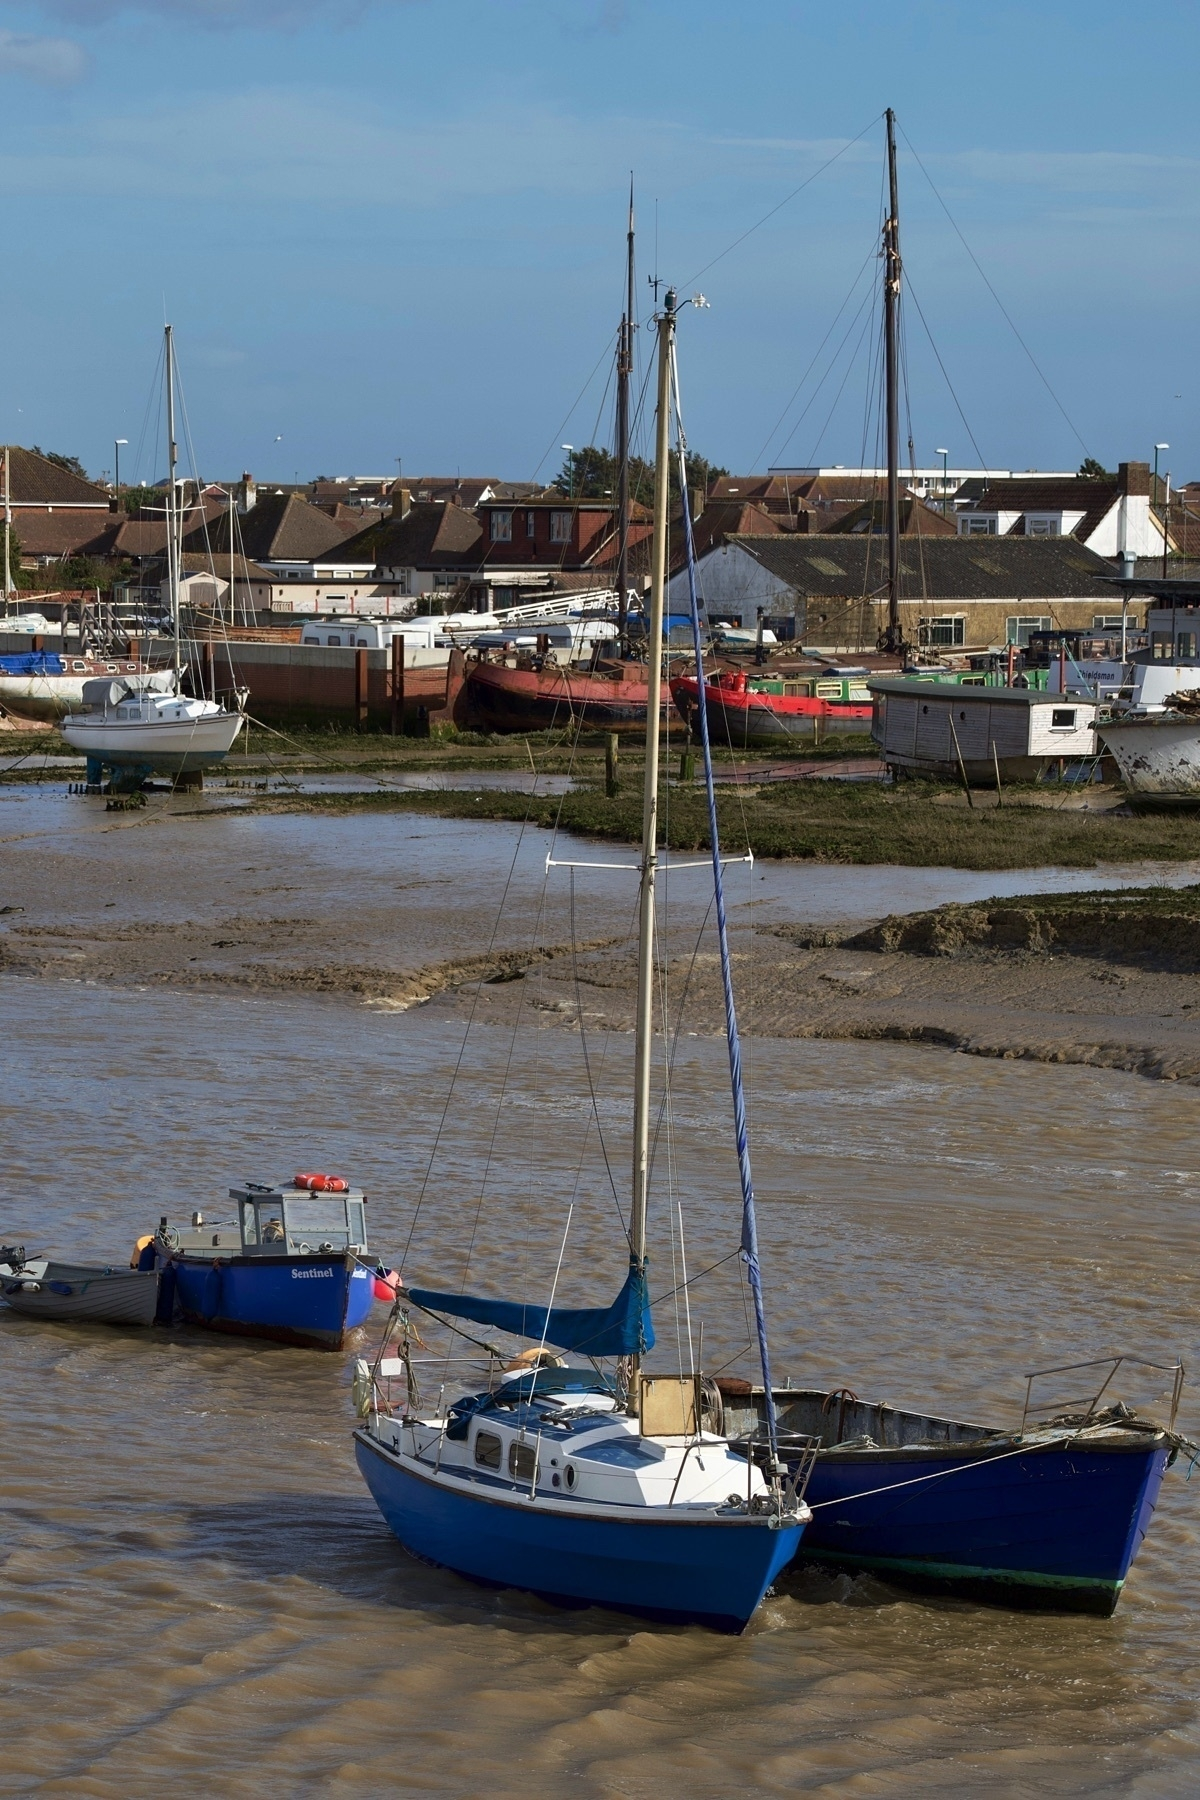 Boats moored in the river Adur.